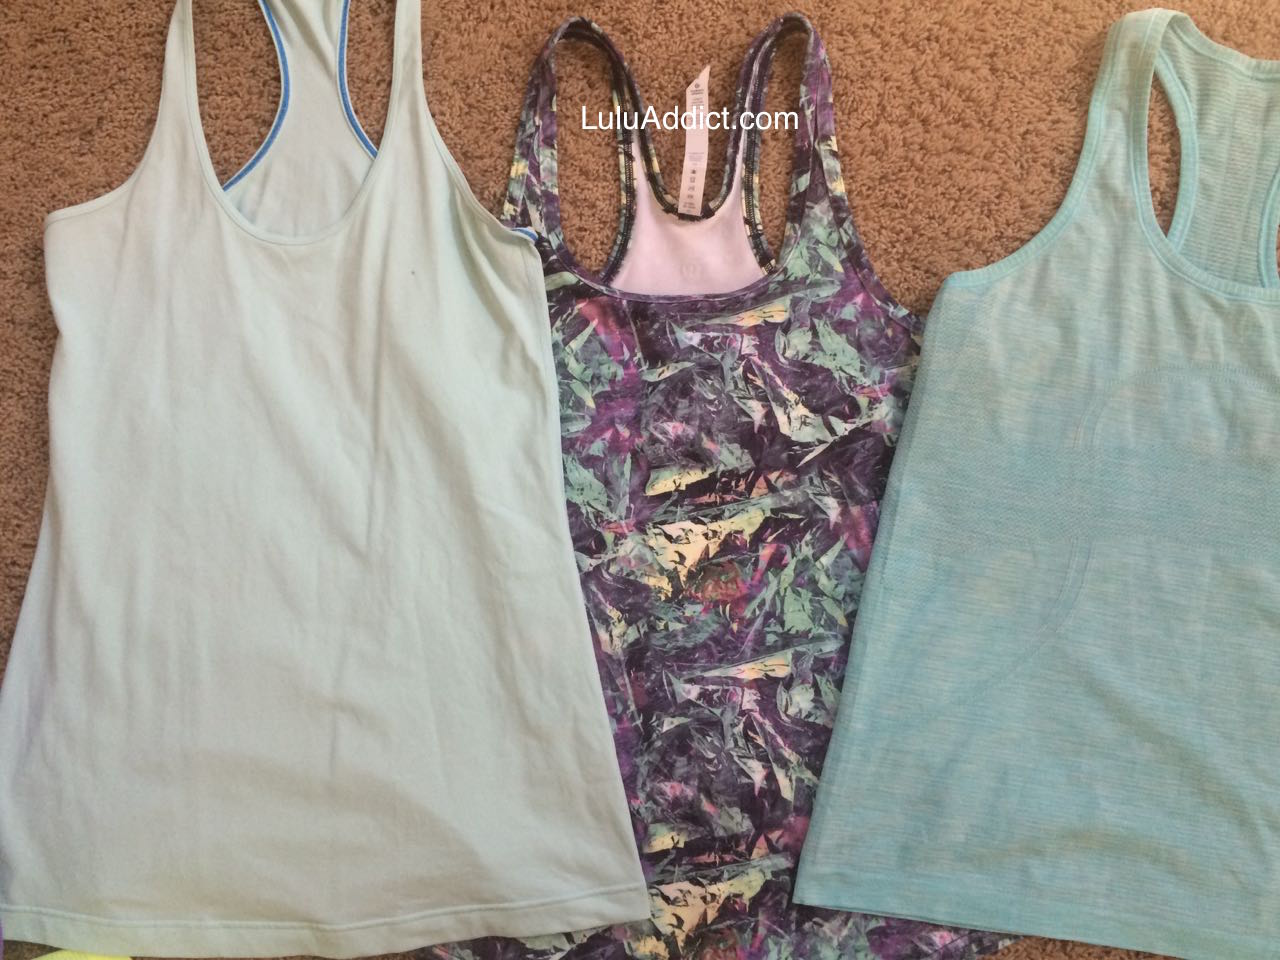 lululemon-studio-racerback iridescent-mult-angel-blue